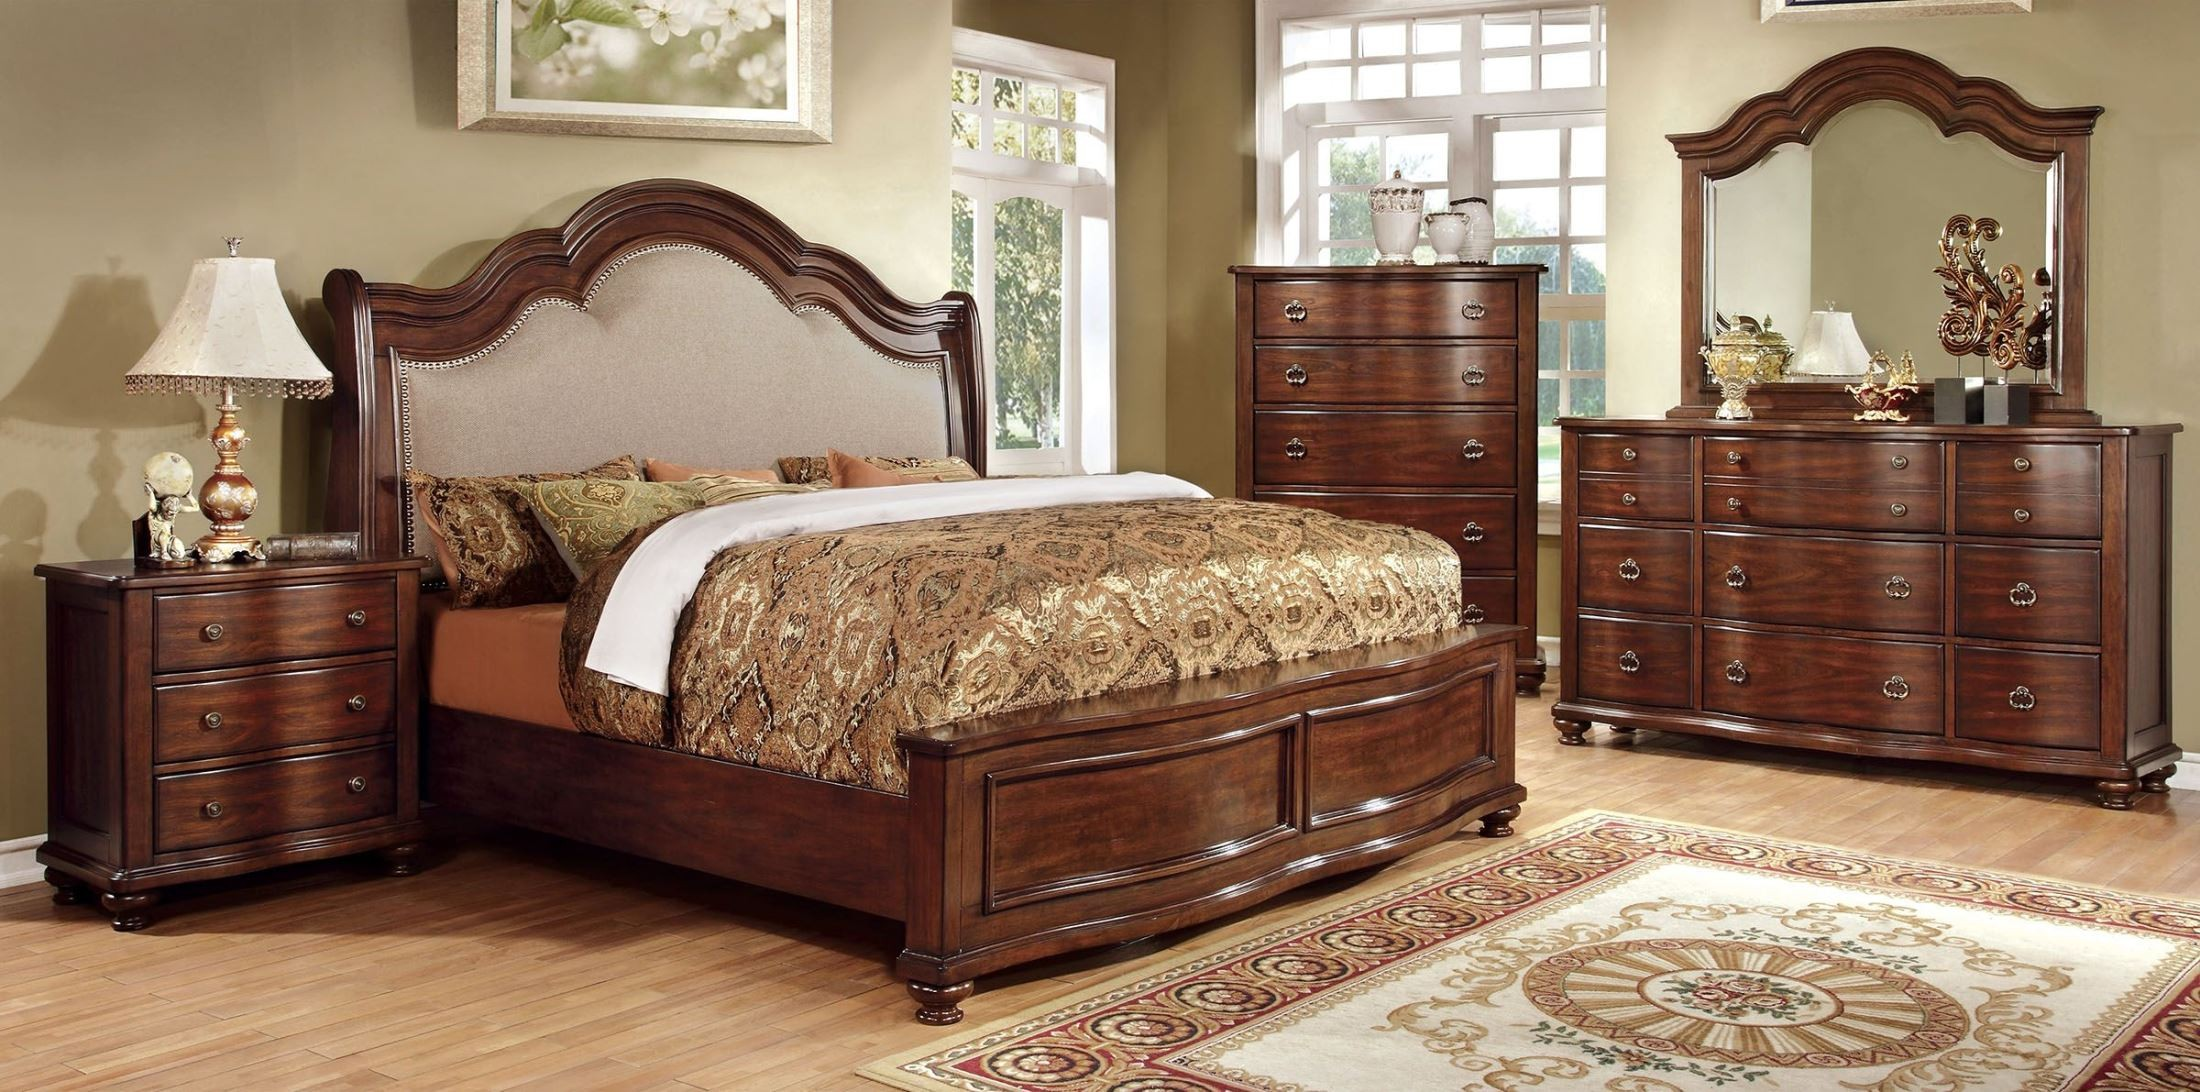 Bellavista Brown Cherry King Bed From Furniture Of America (CM7350EK BED) |  Coleman Furniture